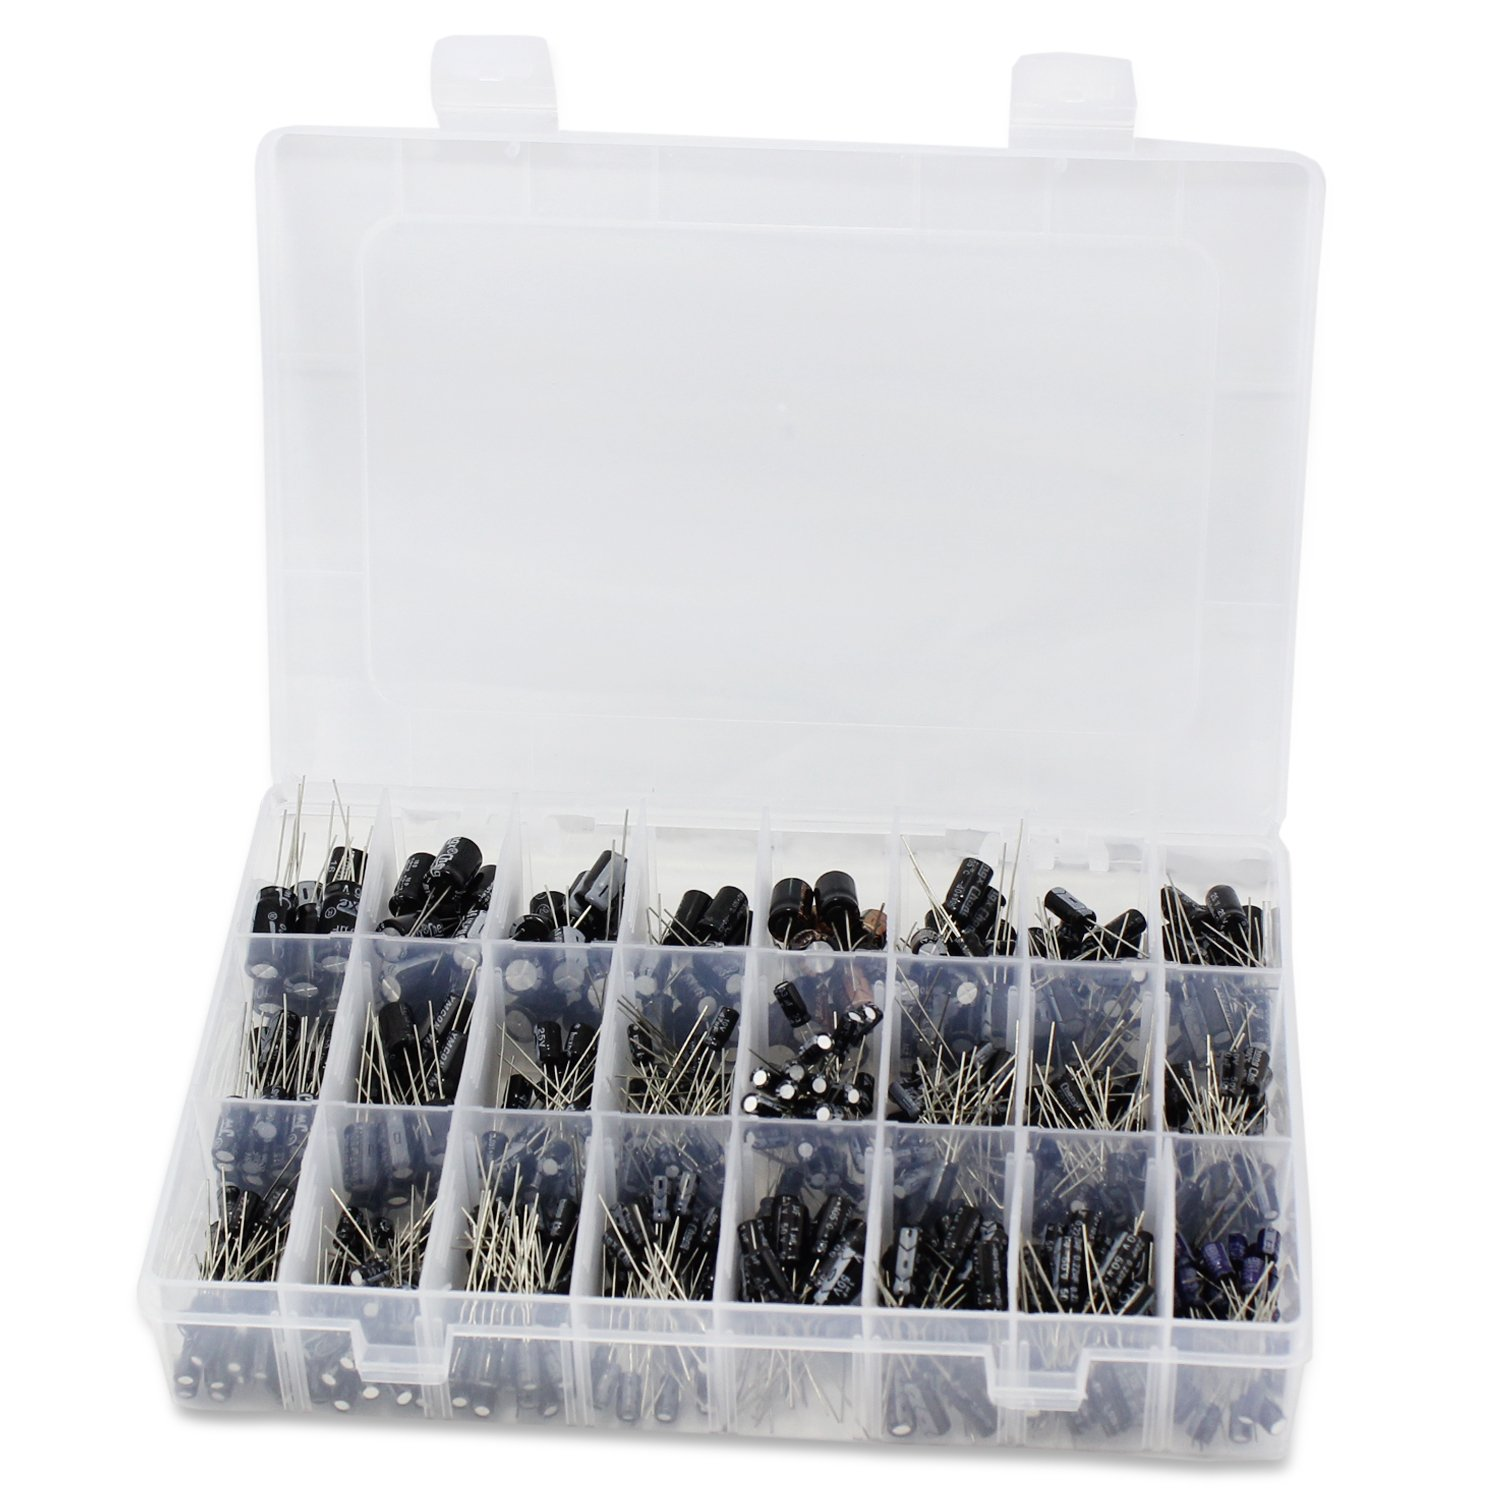 Polyester Film Capacitor 24value 660pcs Aussel Electrolytic Capacitors Assortment Box Rang